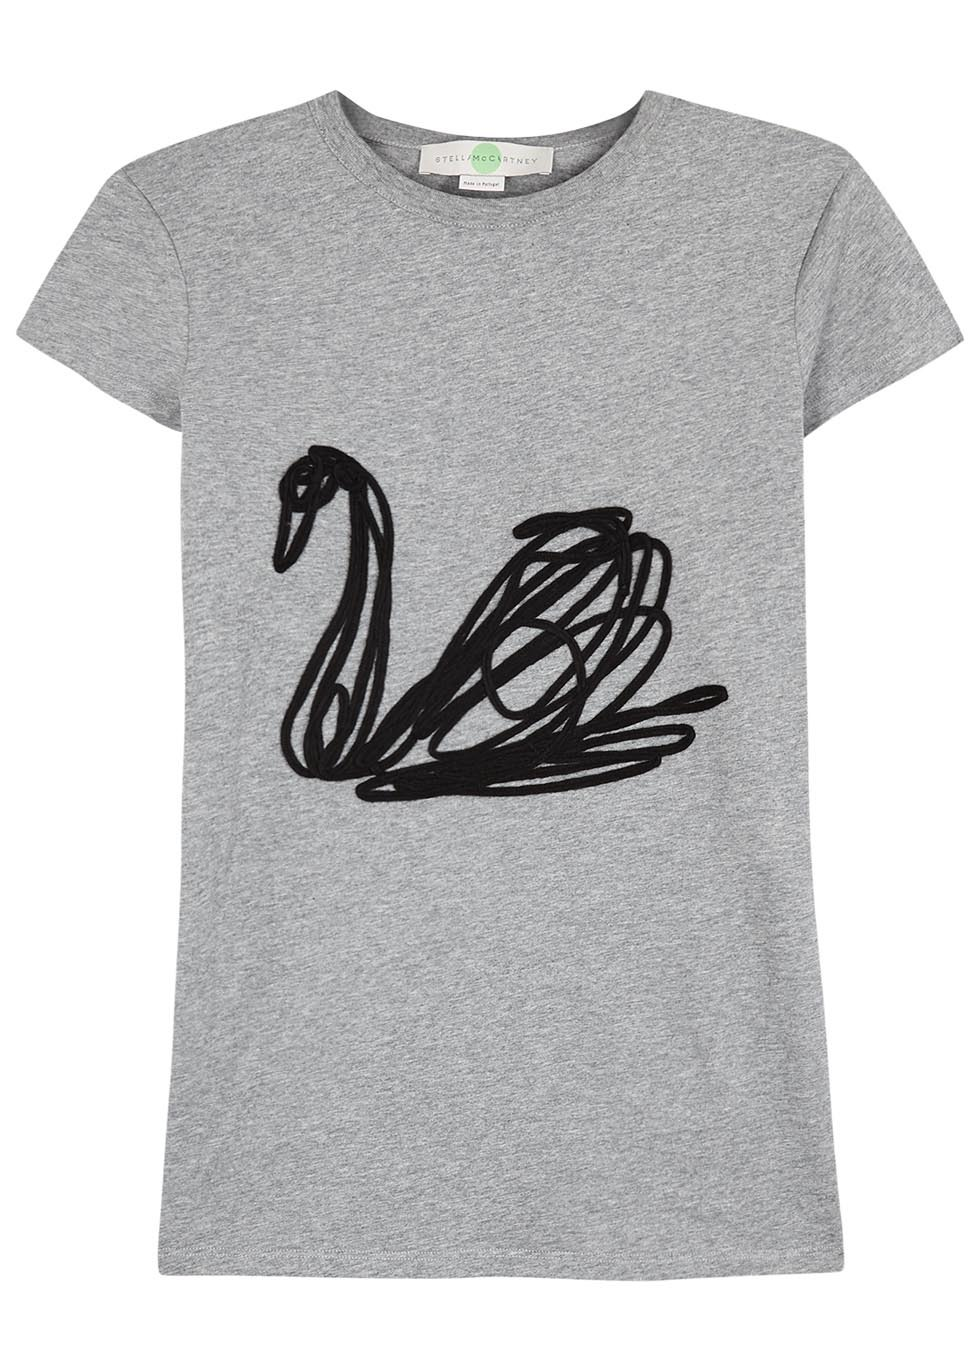 Grey Swan Appliquéd Cotton T Shirt - style: t-shirt; predominant colour: mid grey; occasions: casual; length: standard; fibres: cotton - 100%; fit: body skimming; neckline: crew; sleeve length: short sleeve; sleeve style: standard; pattern type: fabric; pattern: patterned/print; texture group: jersey - stretchy/drapey; season: a/w 2016; wardrobe: highlight